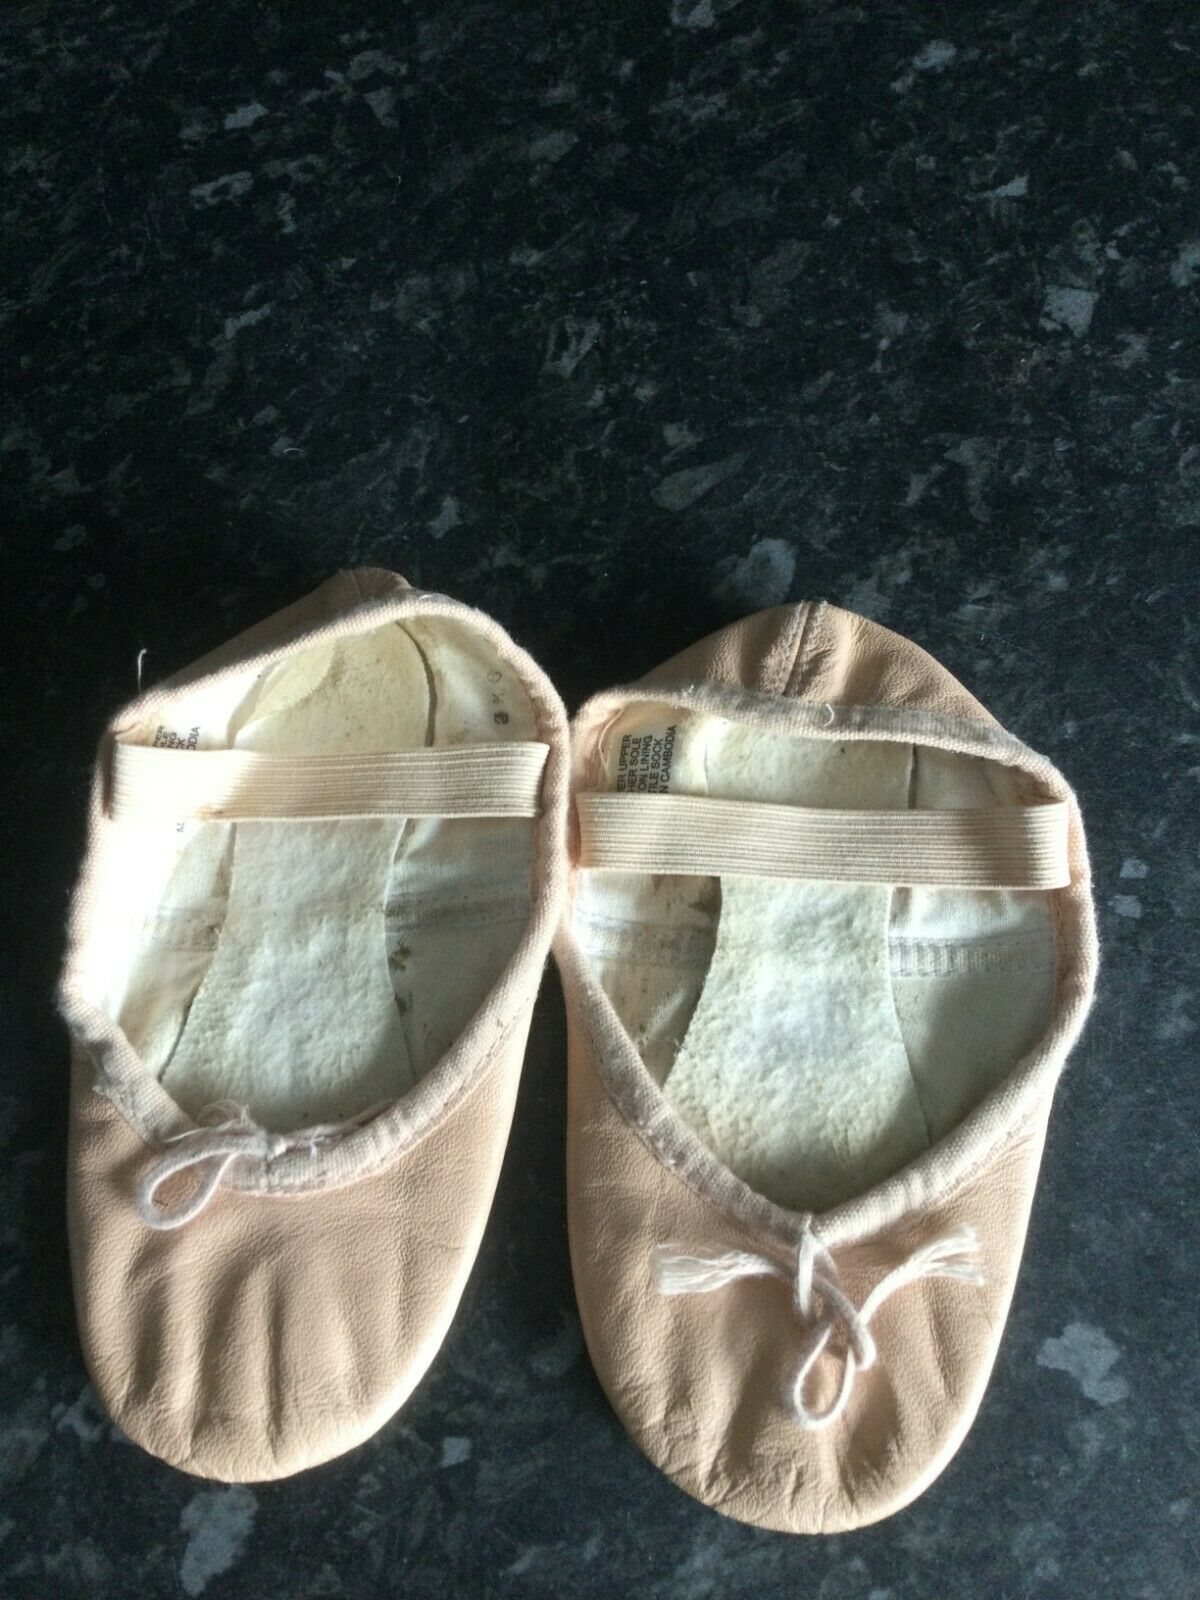 Bloch ballet shoes size 9.5b wedding Christening dance show leather